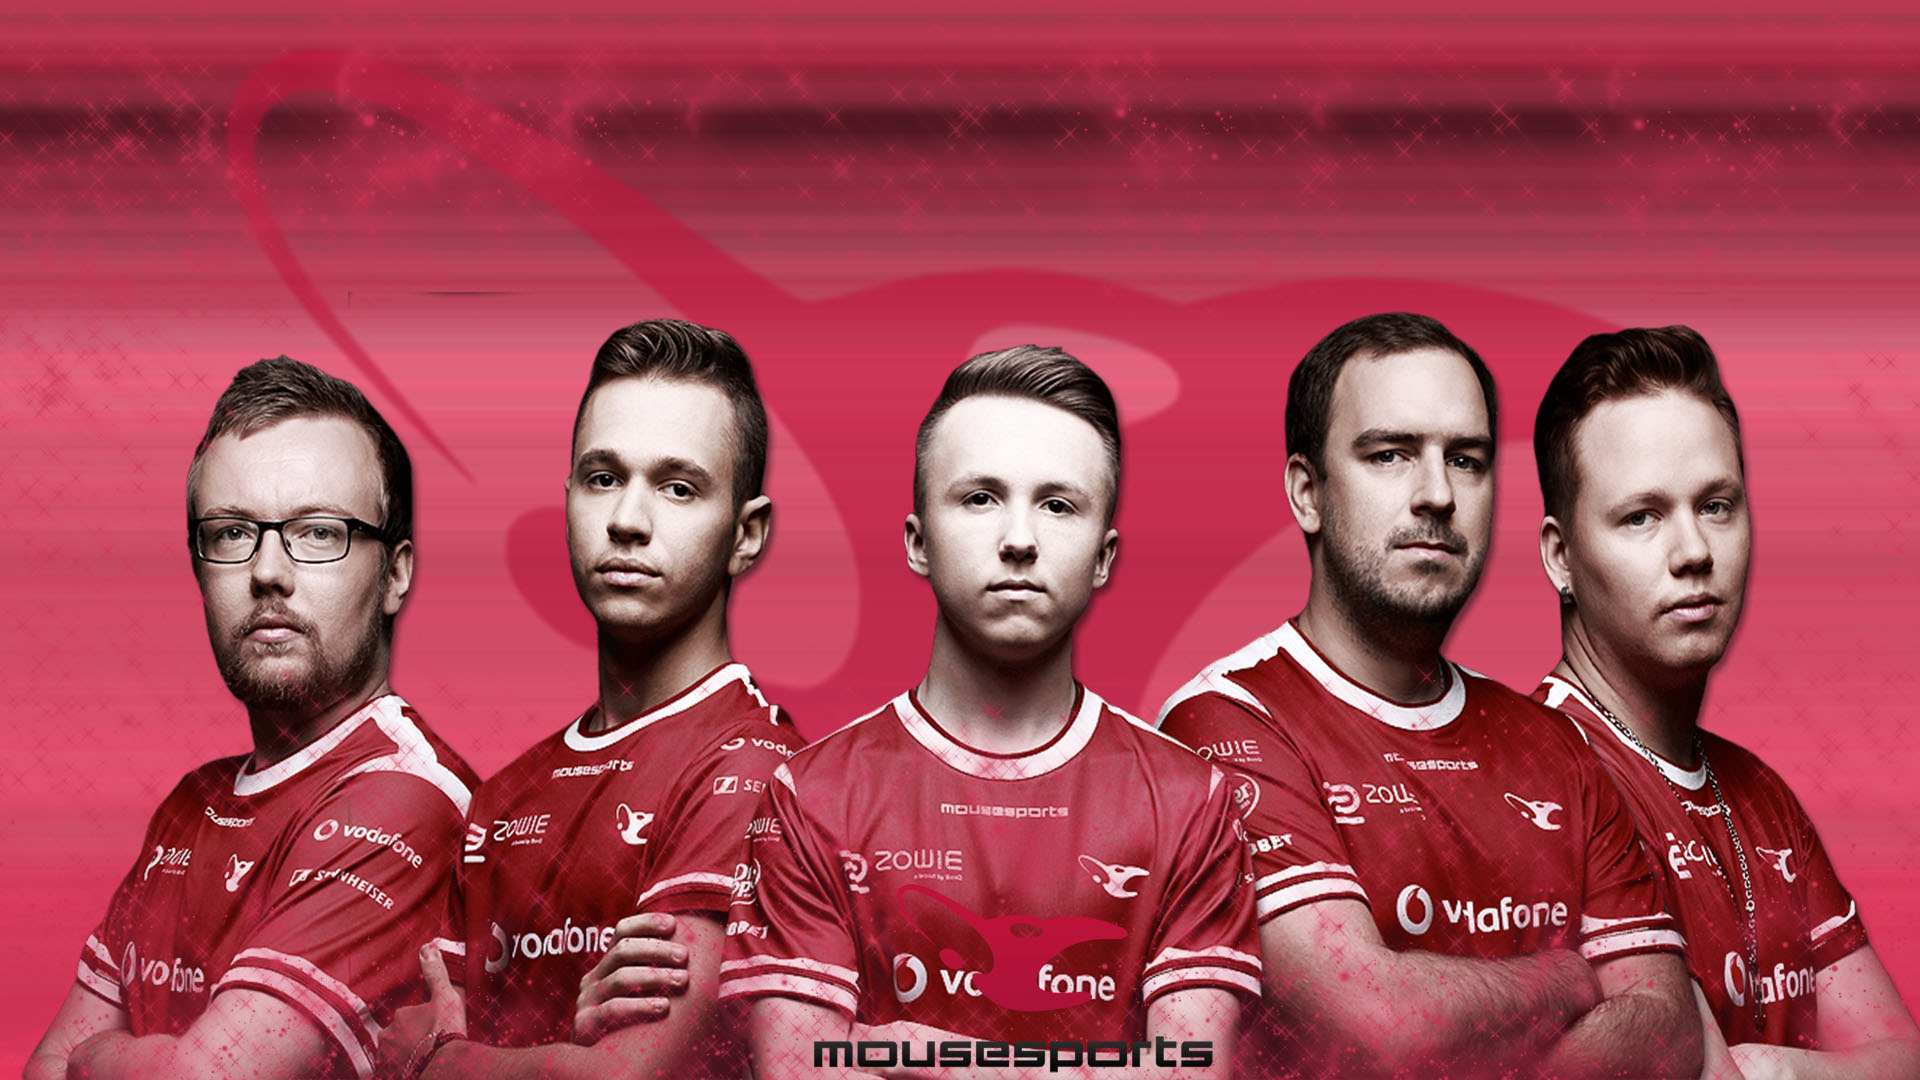 Mousesports wallpaper with player by Ronofar